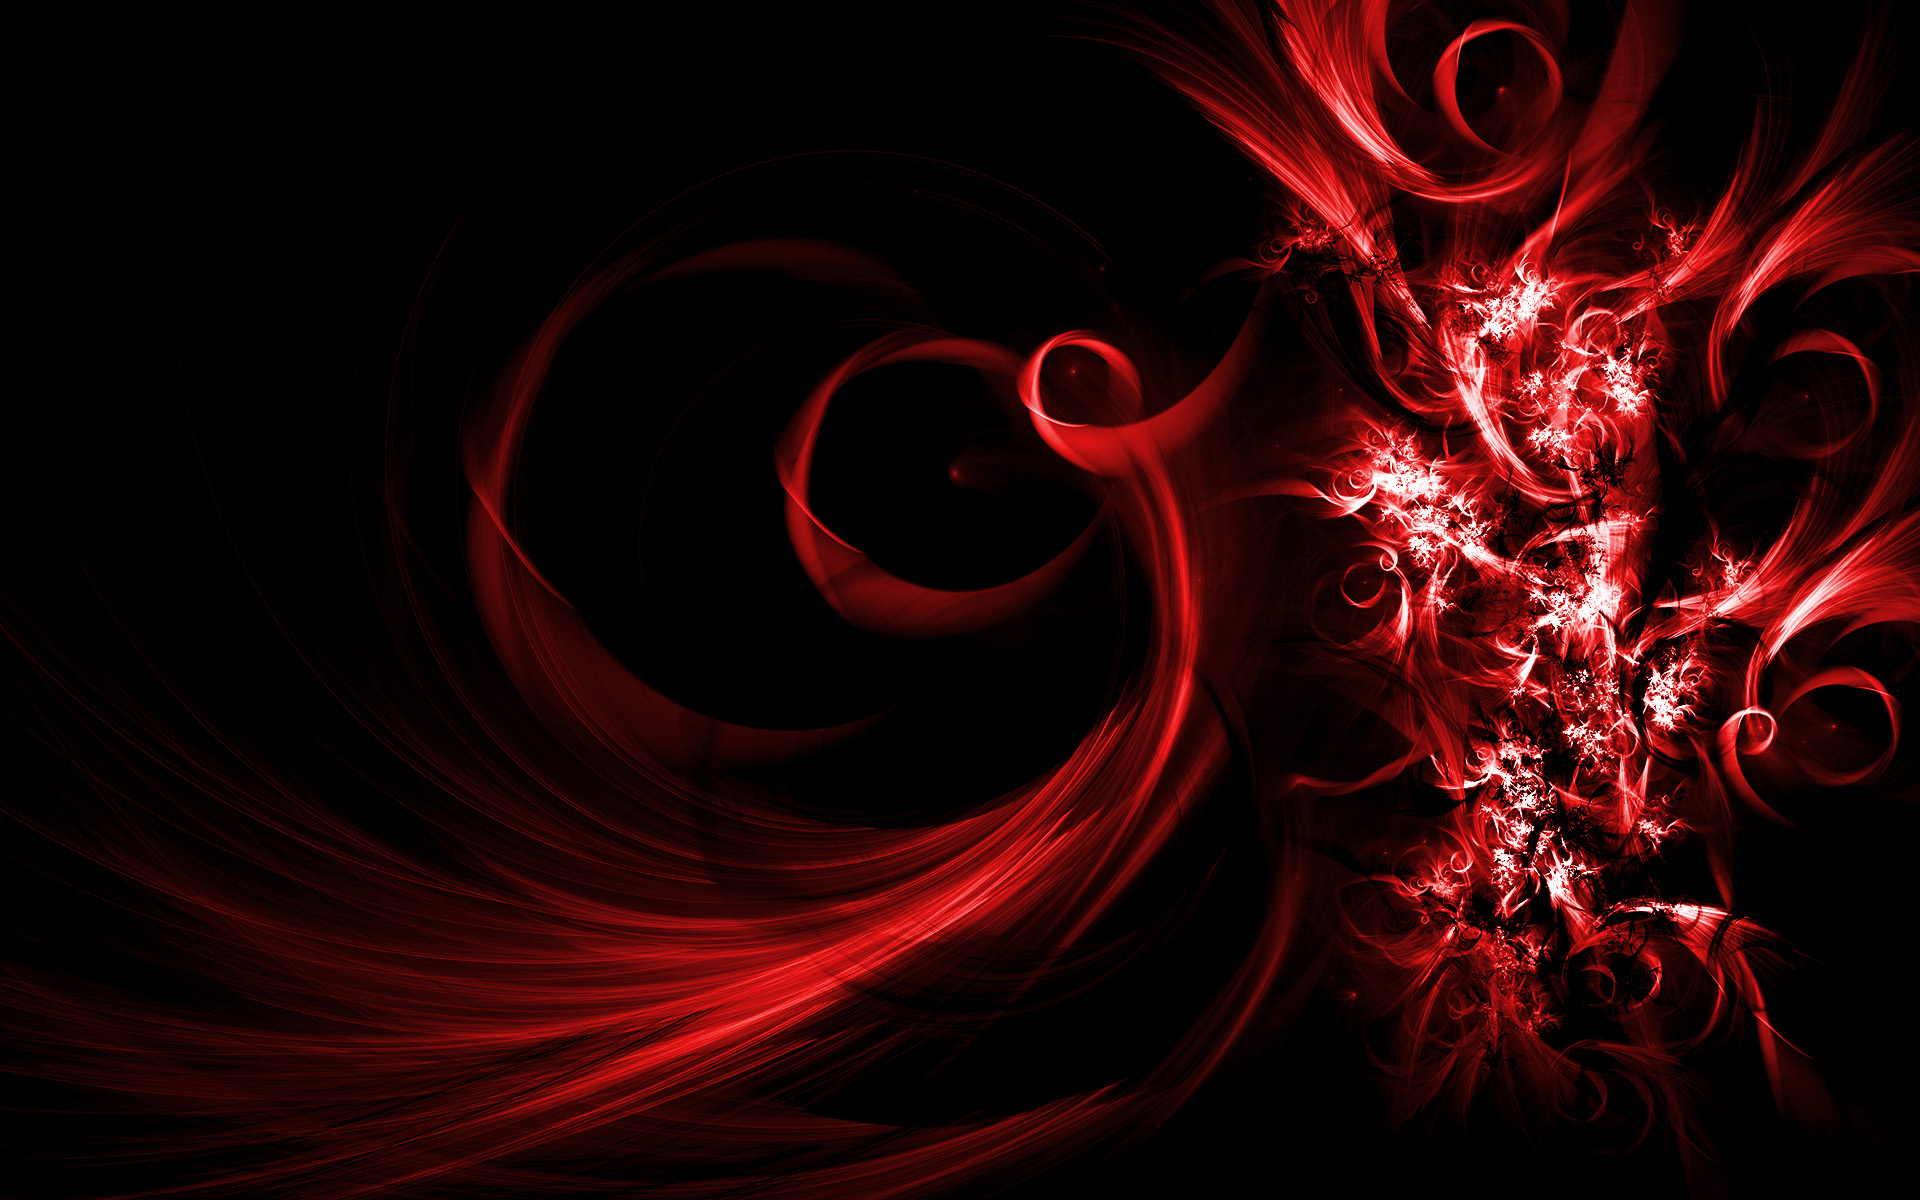 Download Hd Red Wallpaper For Desktop And Mobile